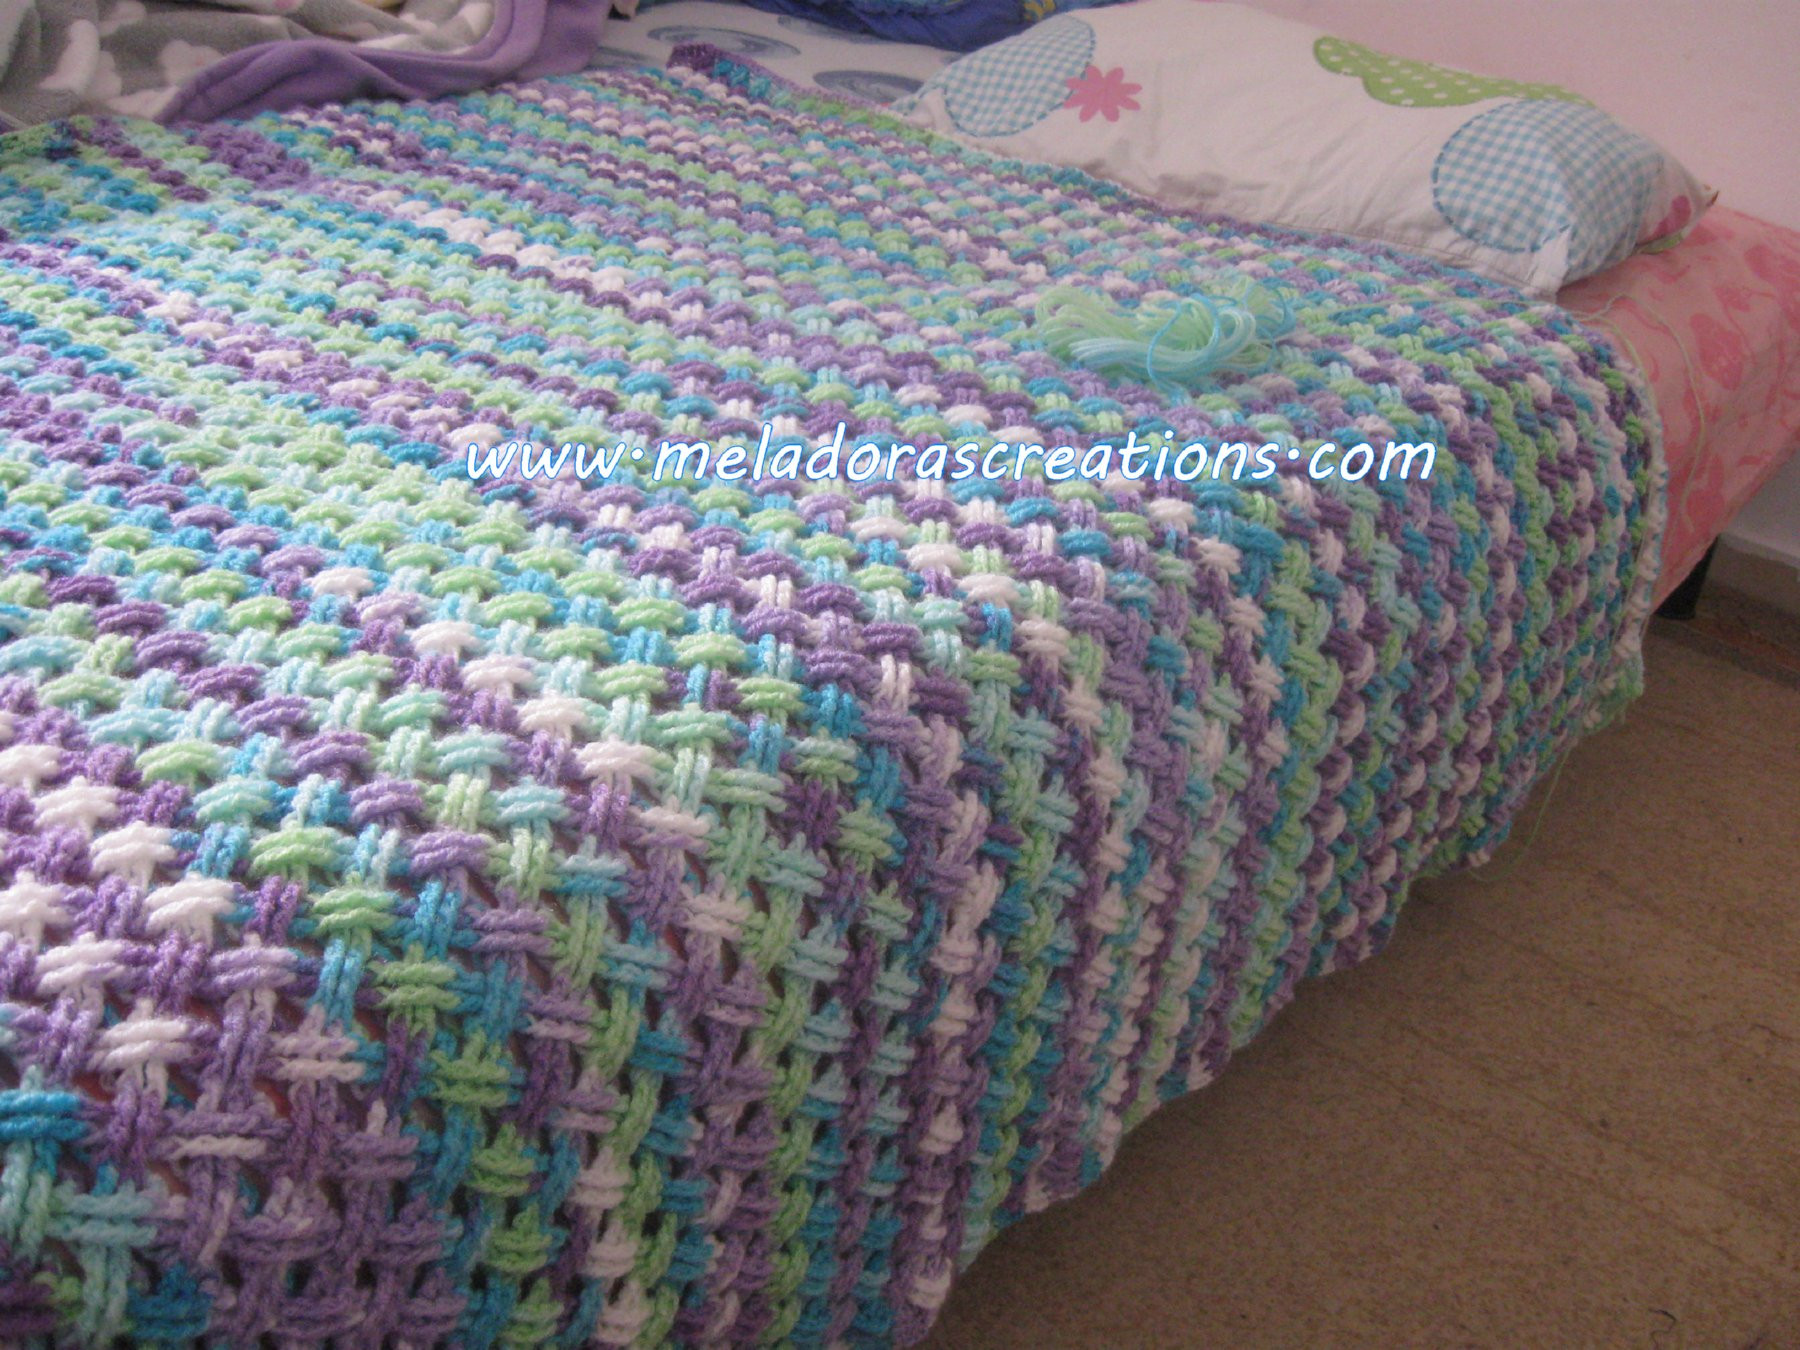 Luxury Meladora S Creations – Interweave Cable Celtic Weave Free Crochet Stitches Of Awesome 41 Models Free Crochet Stitches